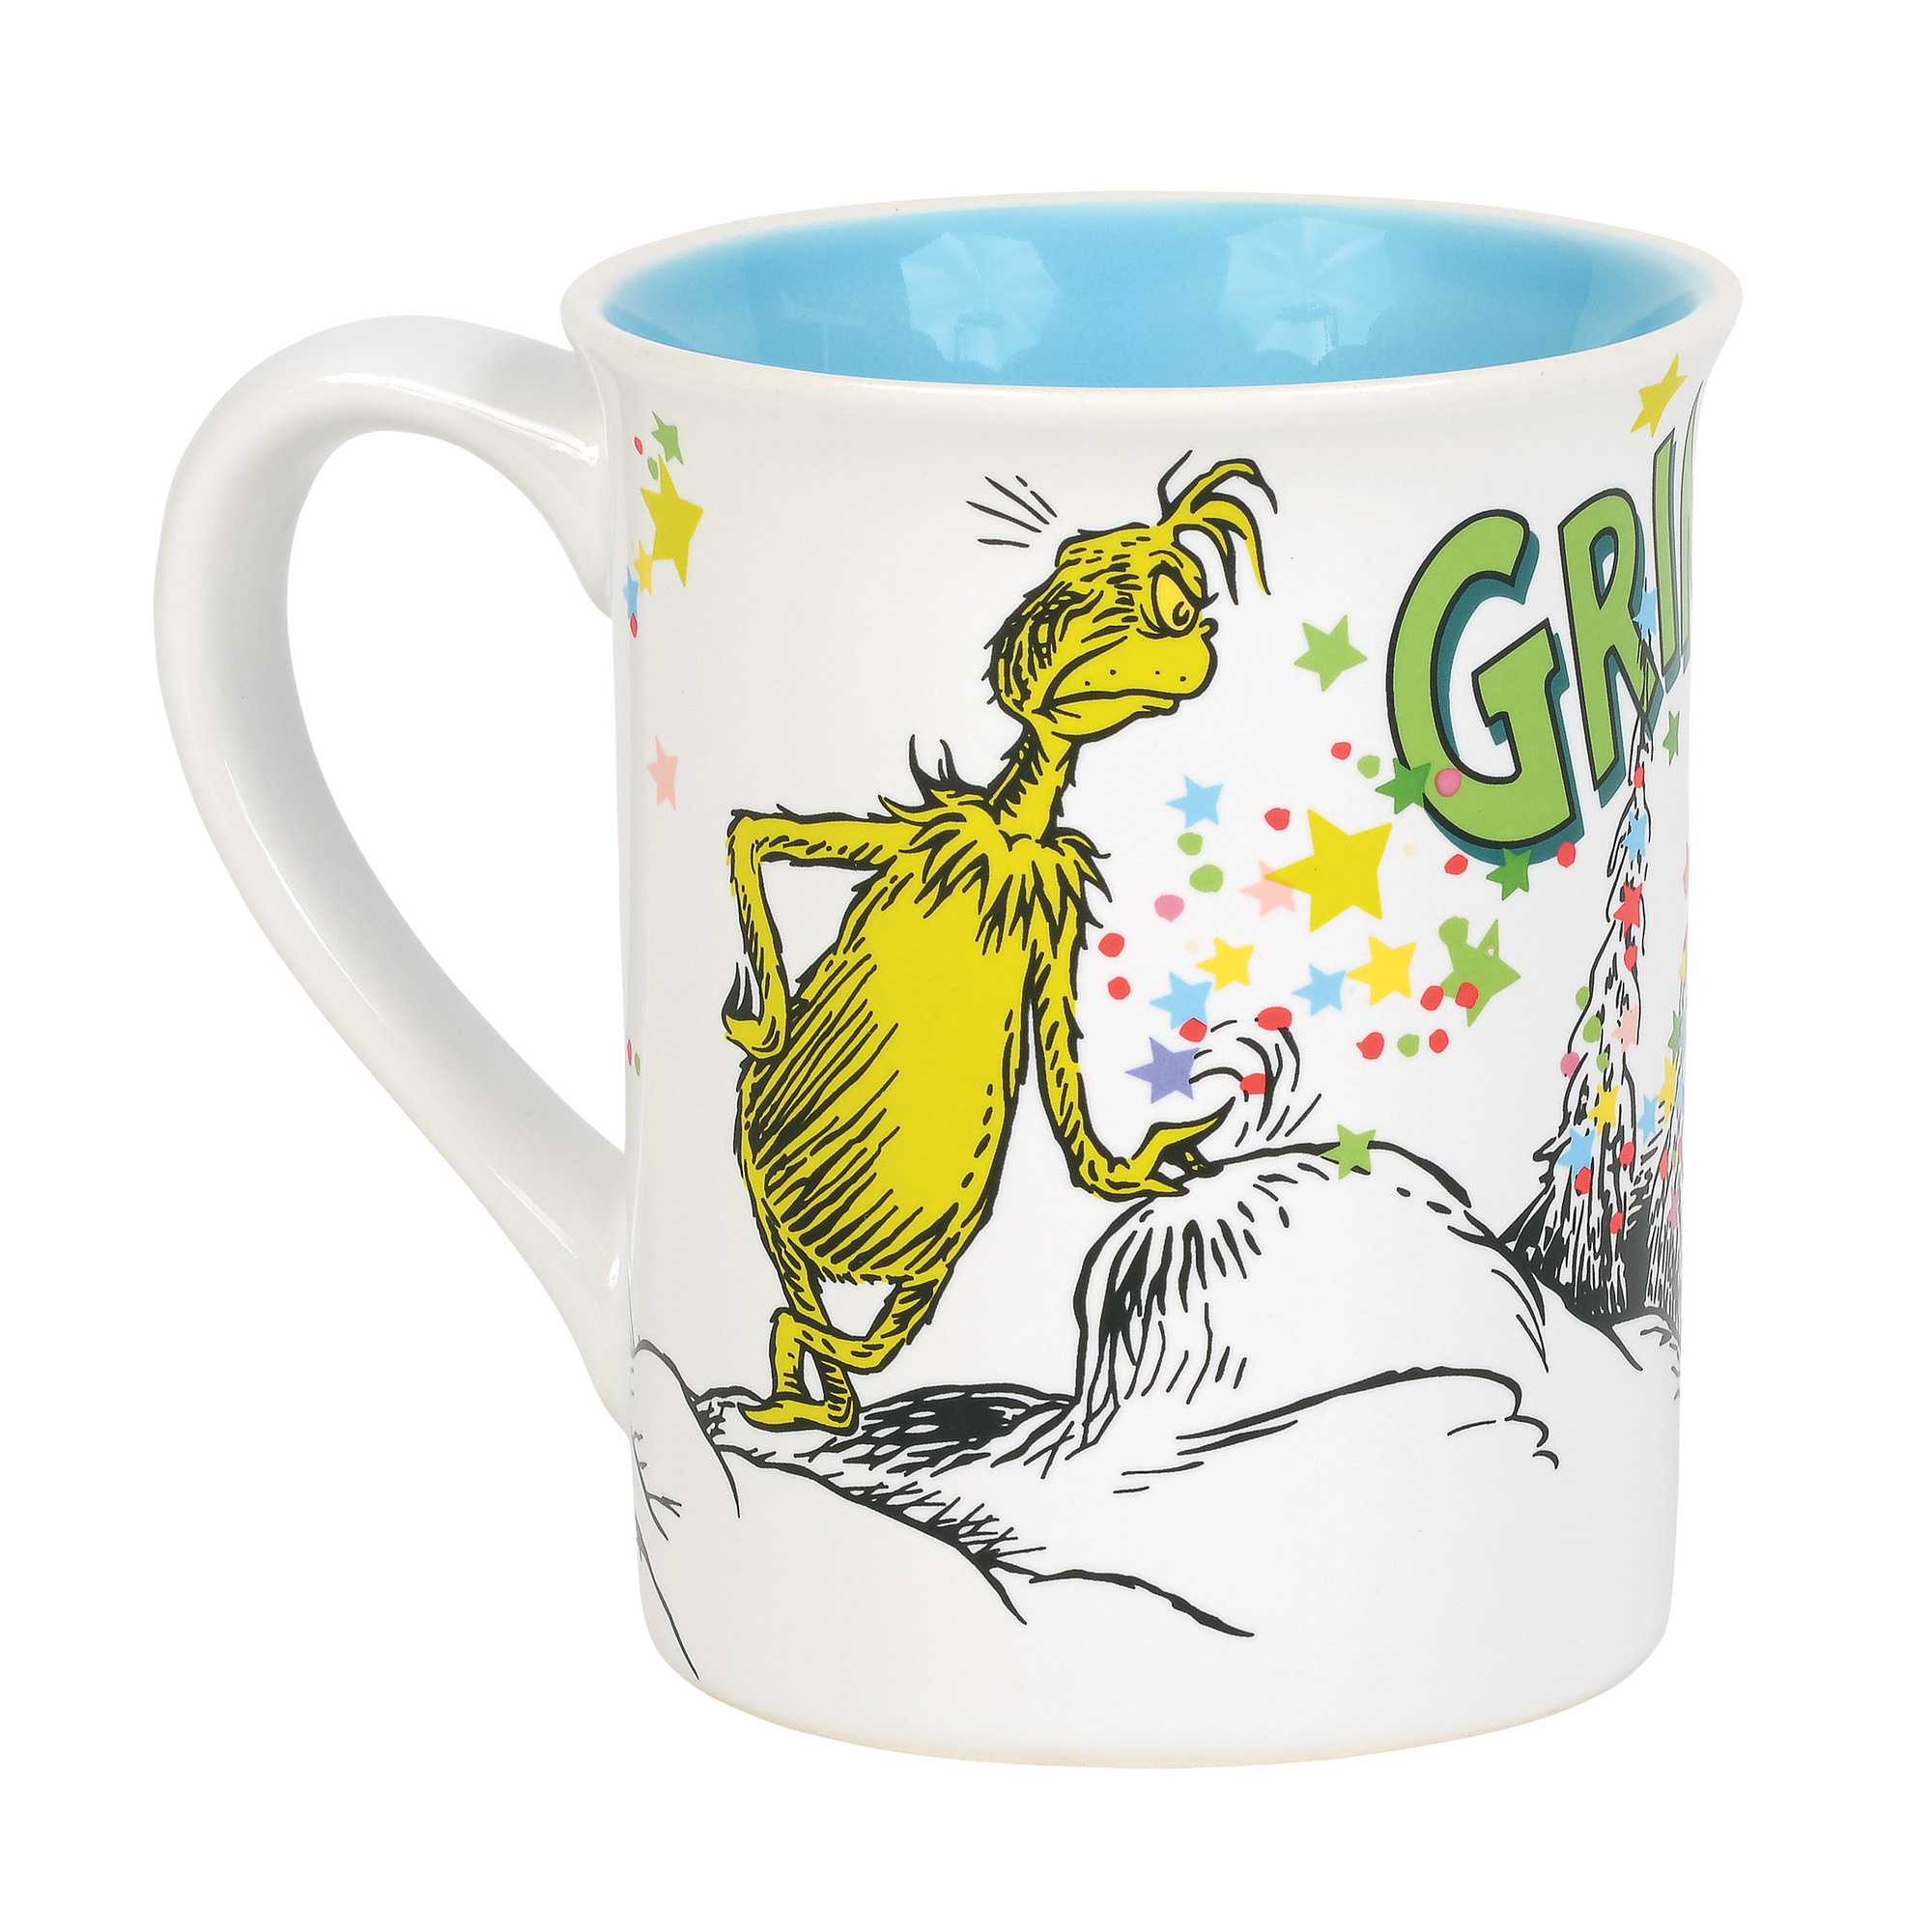 Department 56 Grinch Mug